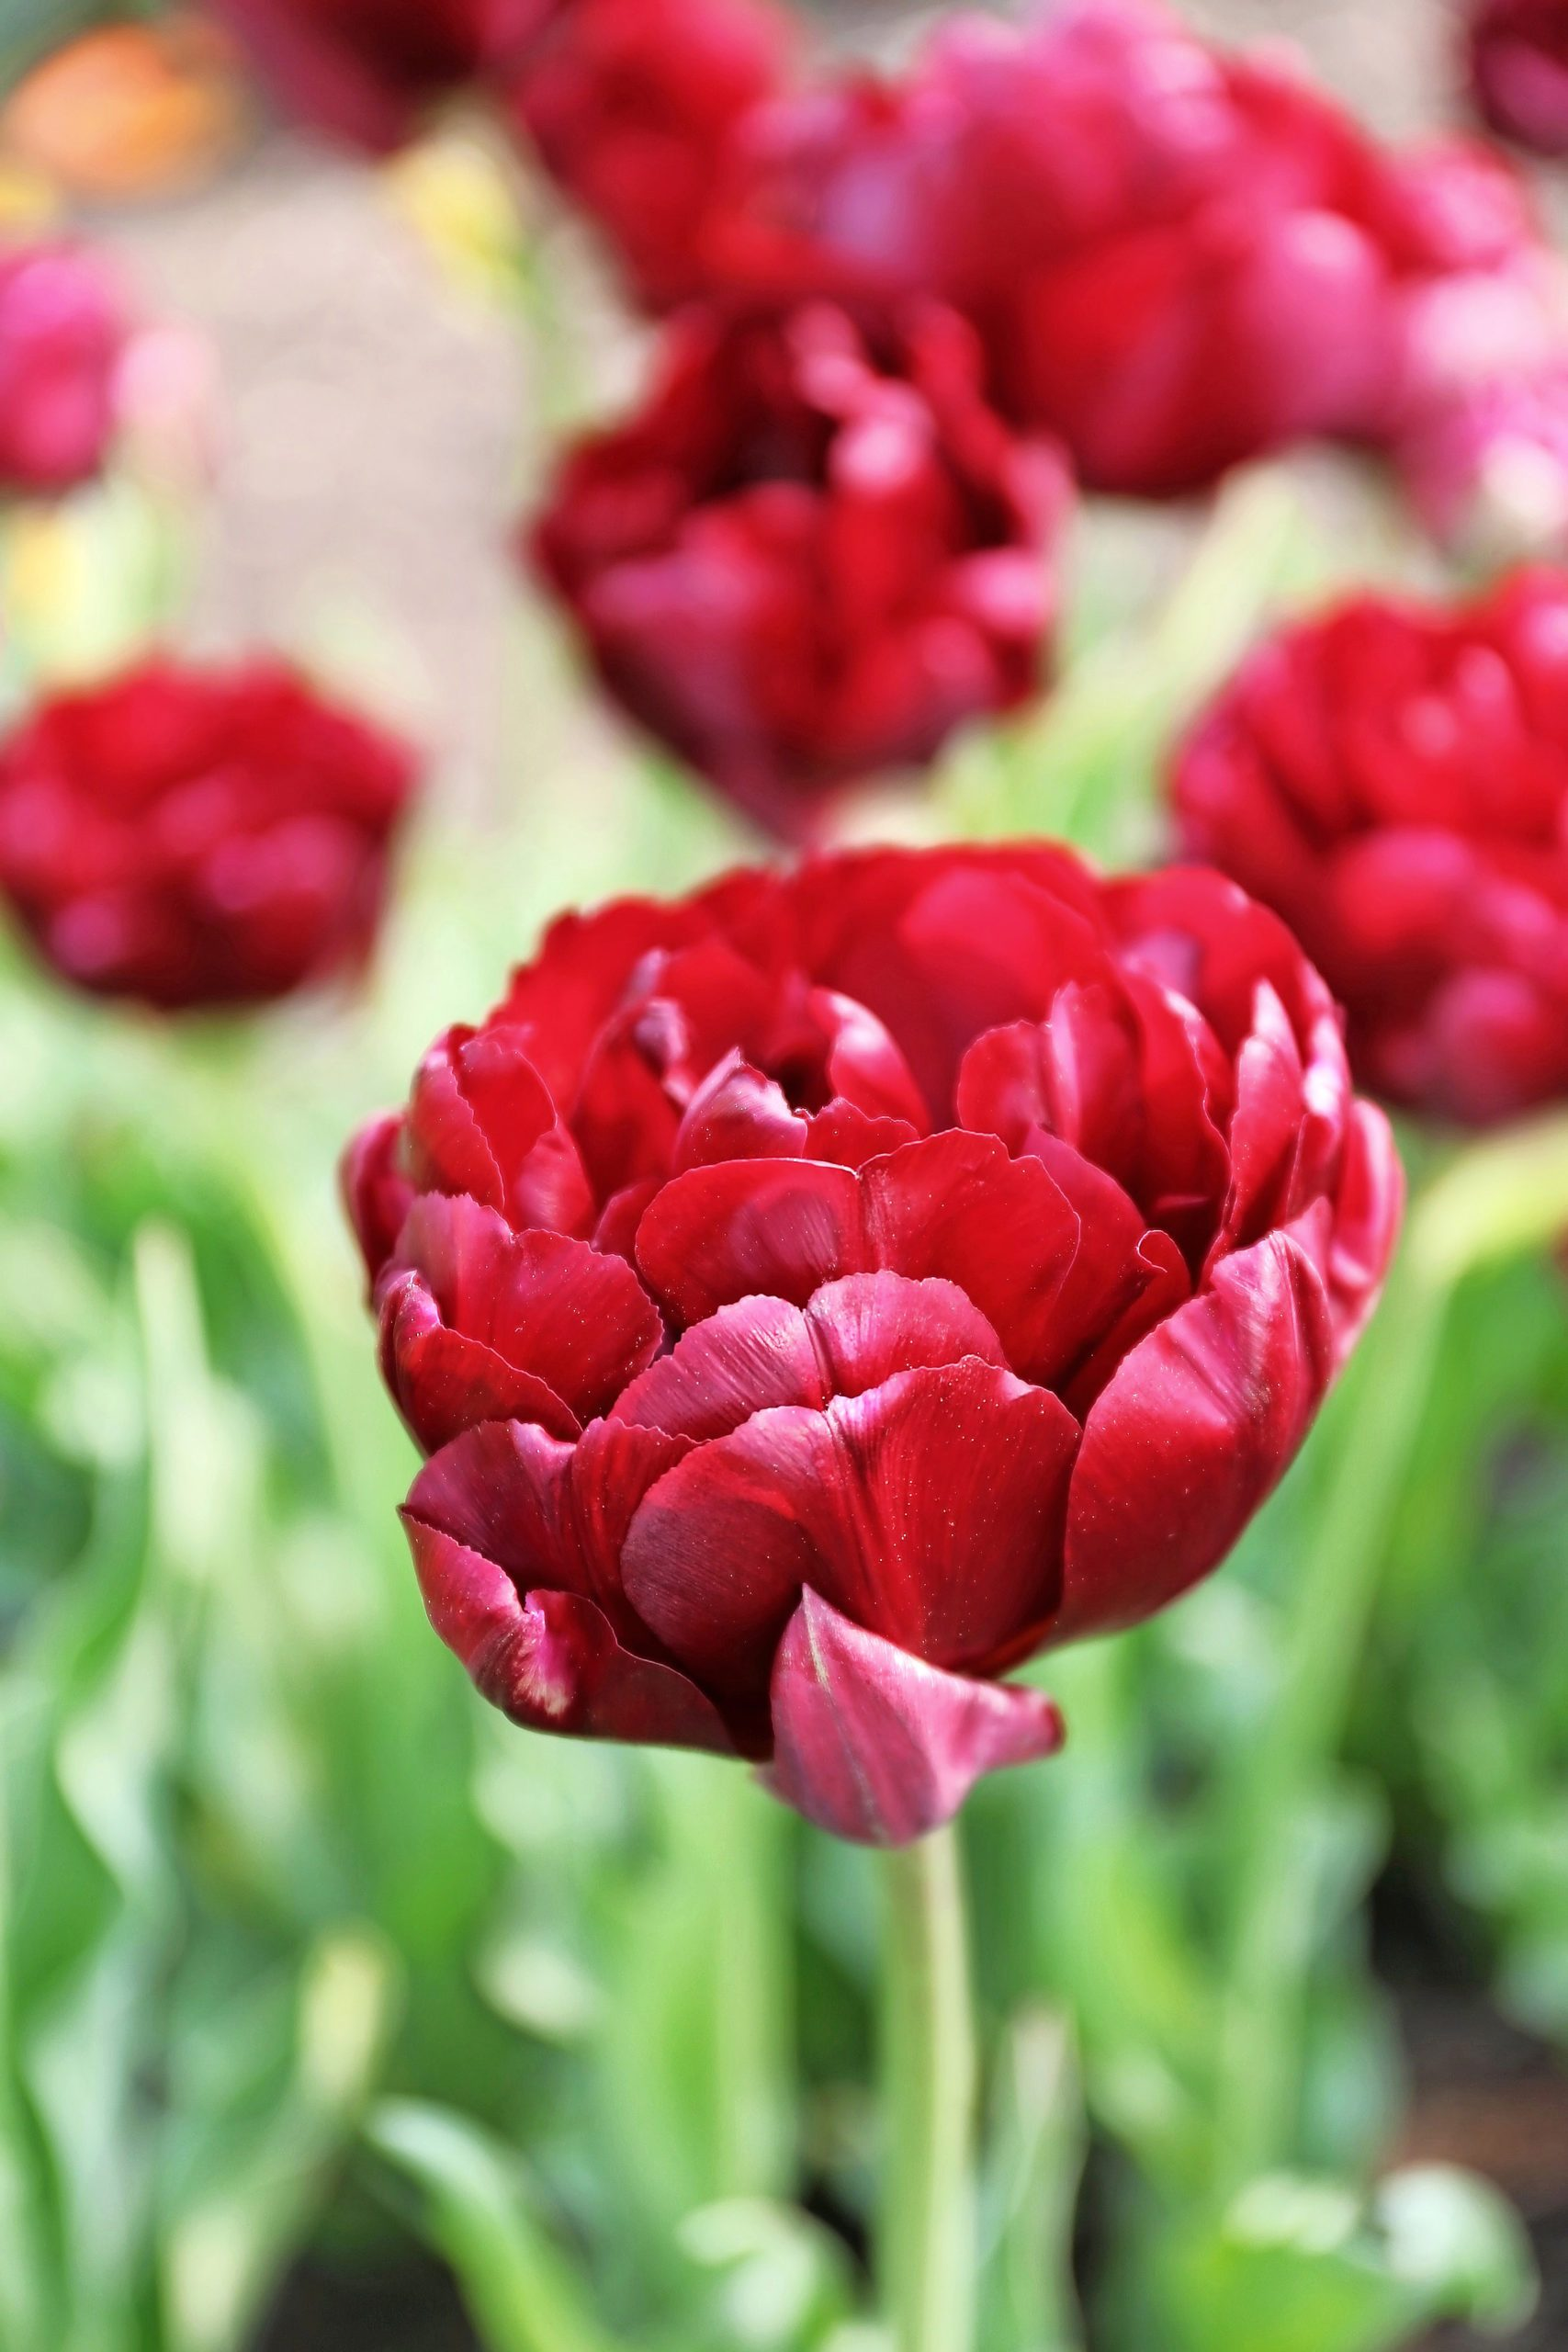 A red Midnight Magic tulip.